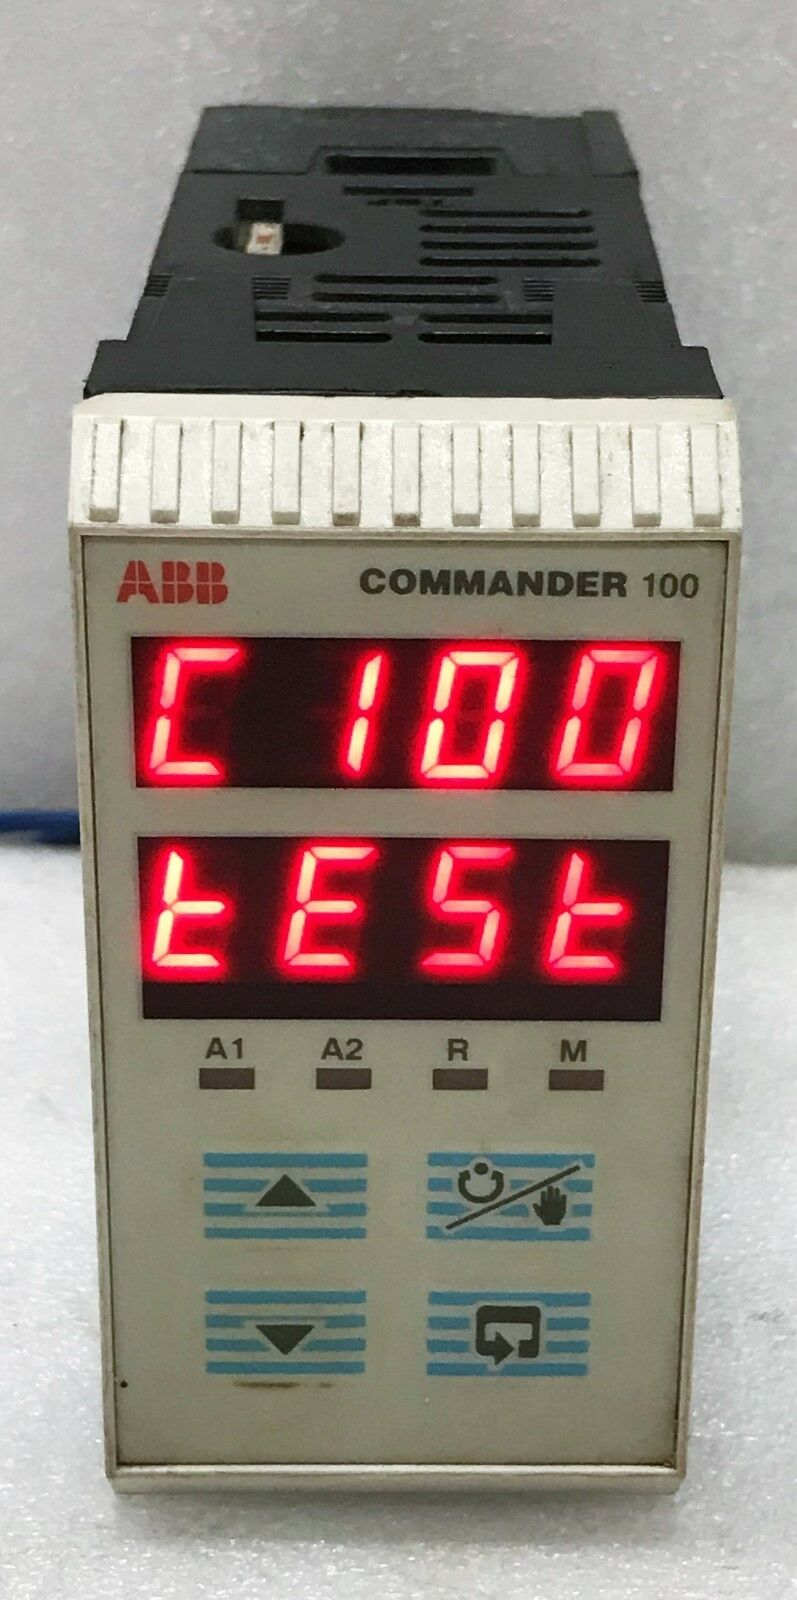 ABB C100 0000 STD Commander C100 1 8 DIN Universal Process Controller FOR PARTS